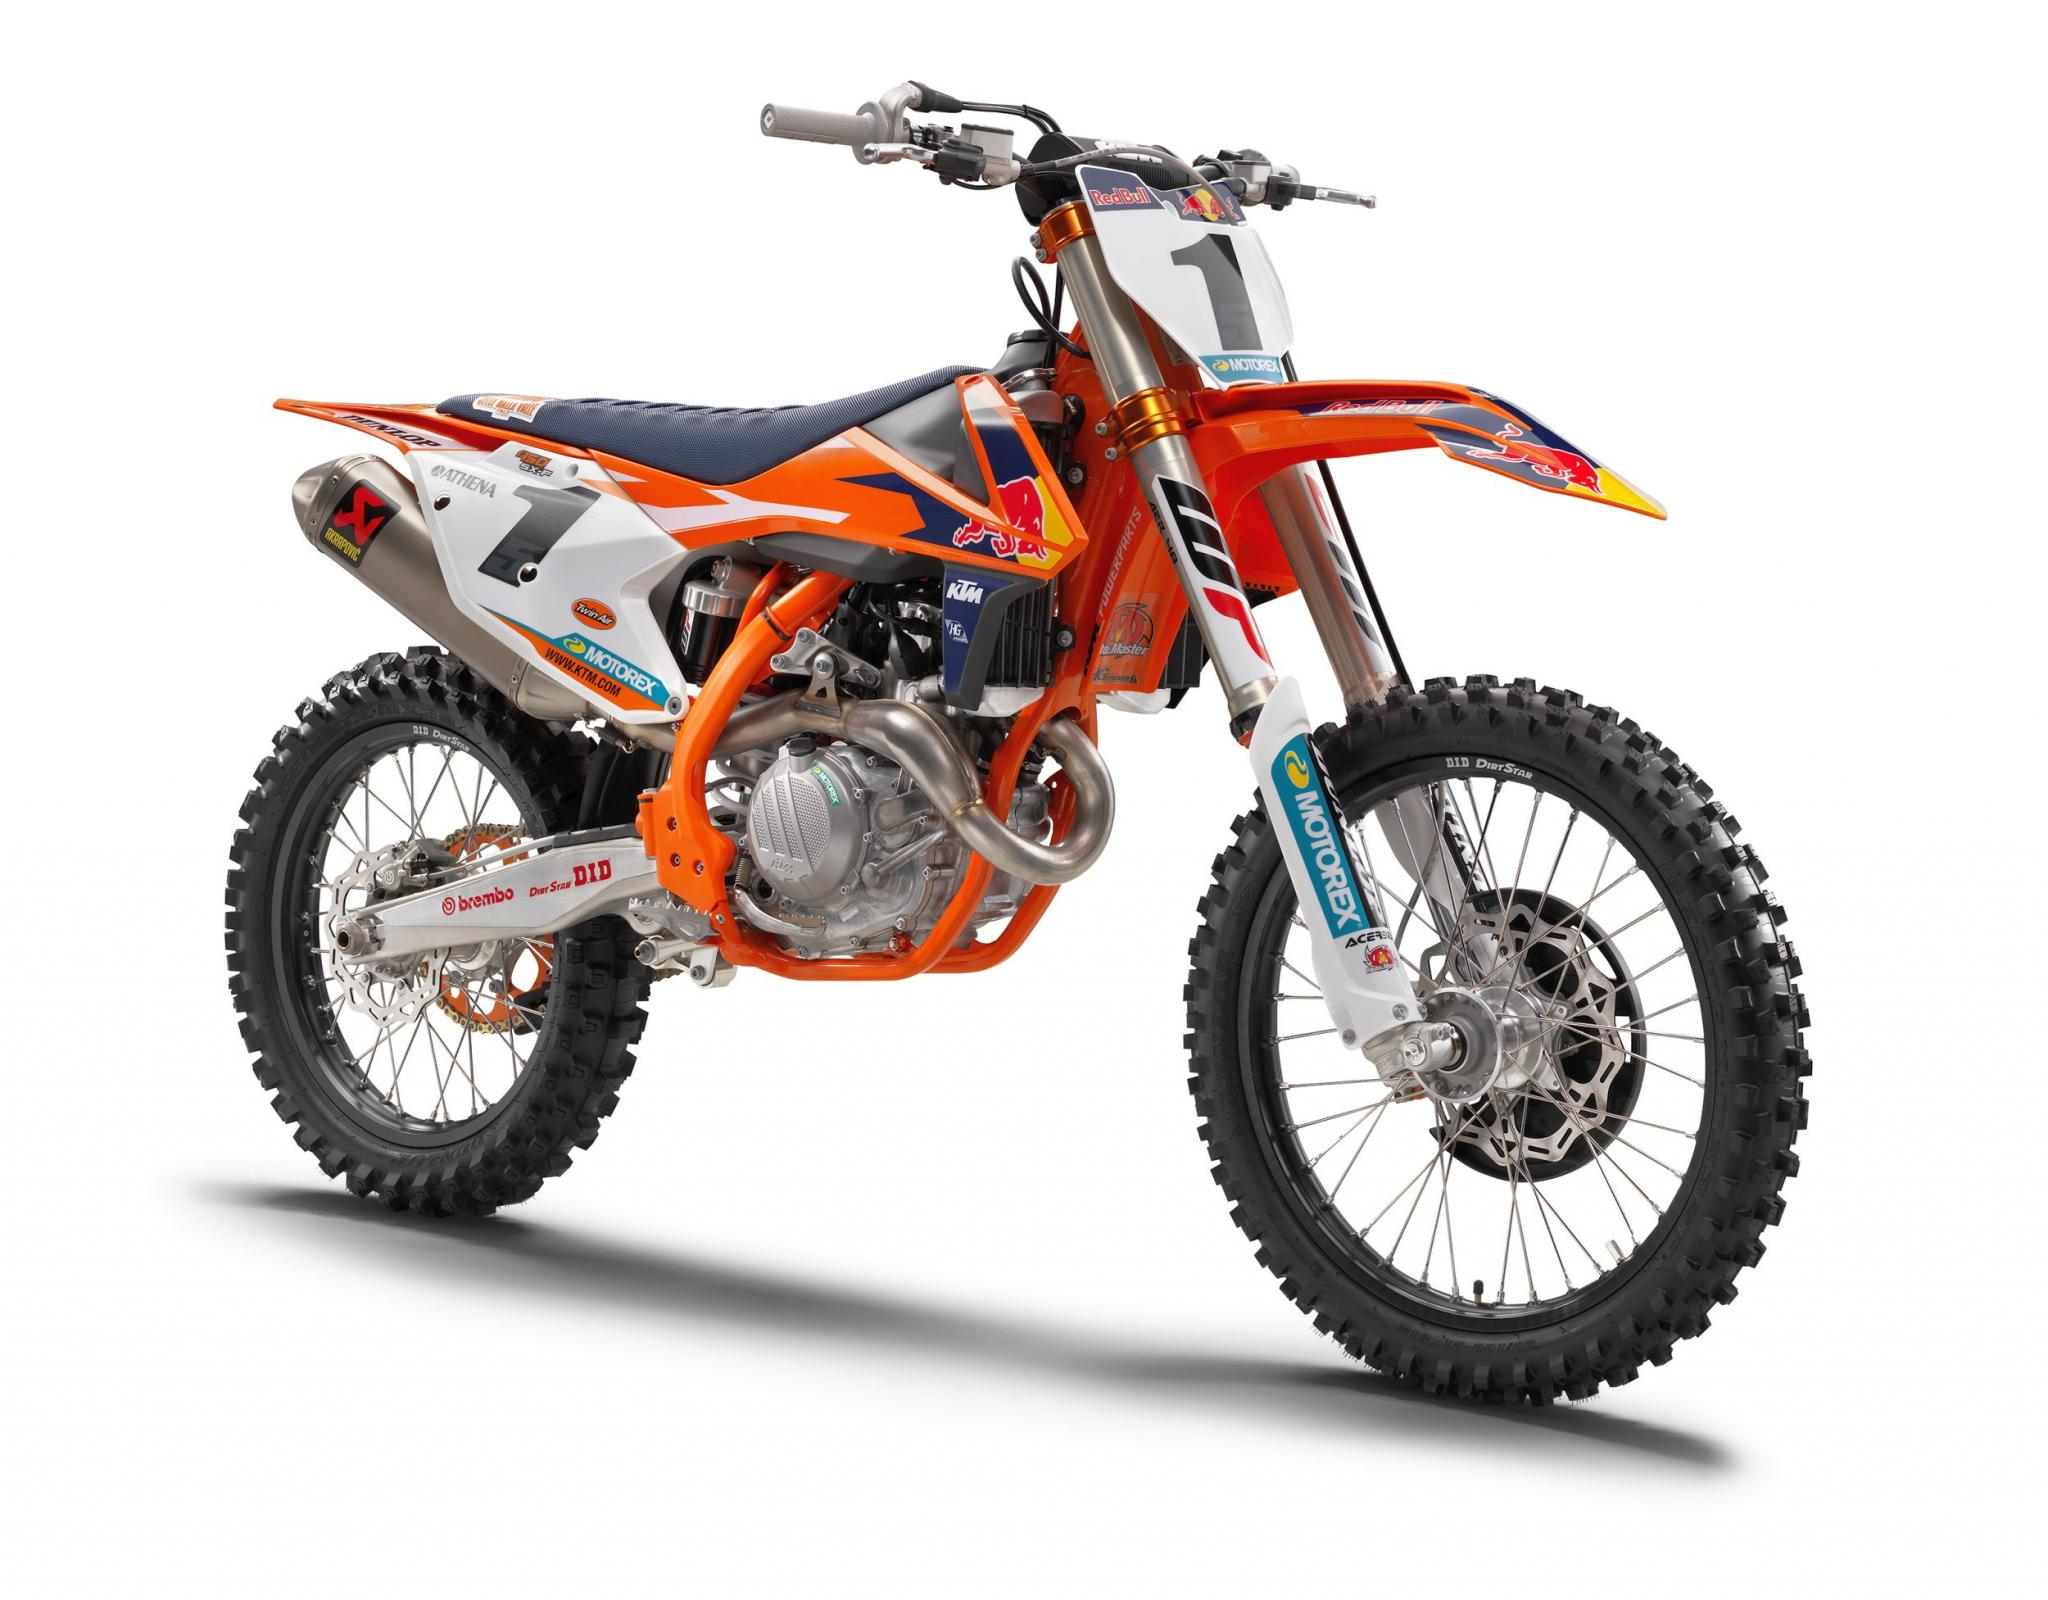 Ktm Ryan Dungey Edition For Sale